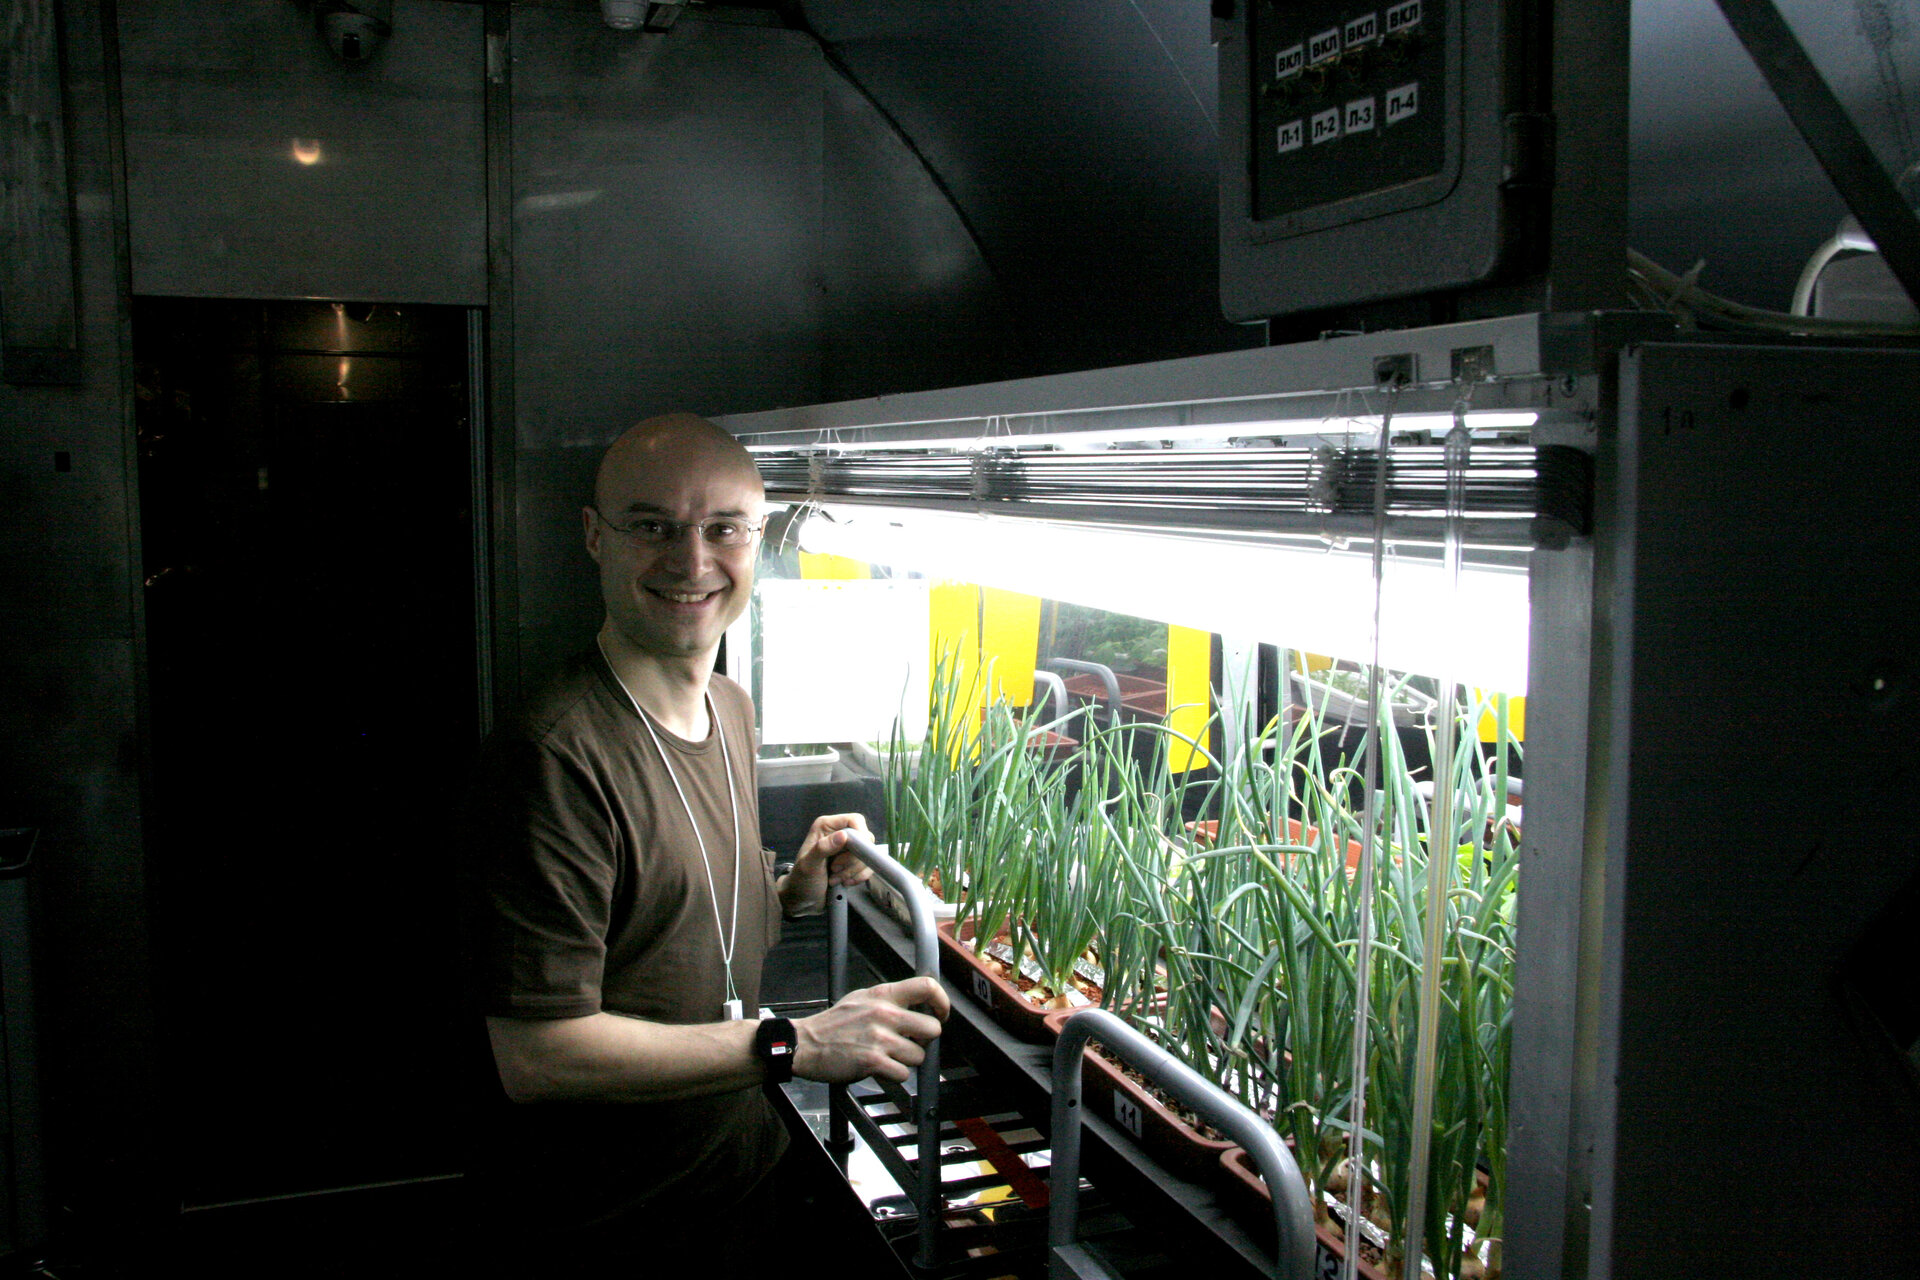 Cyrille with the crops growing in the facility's greenhouse